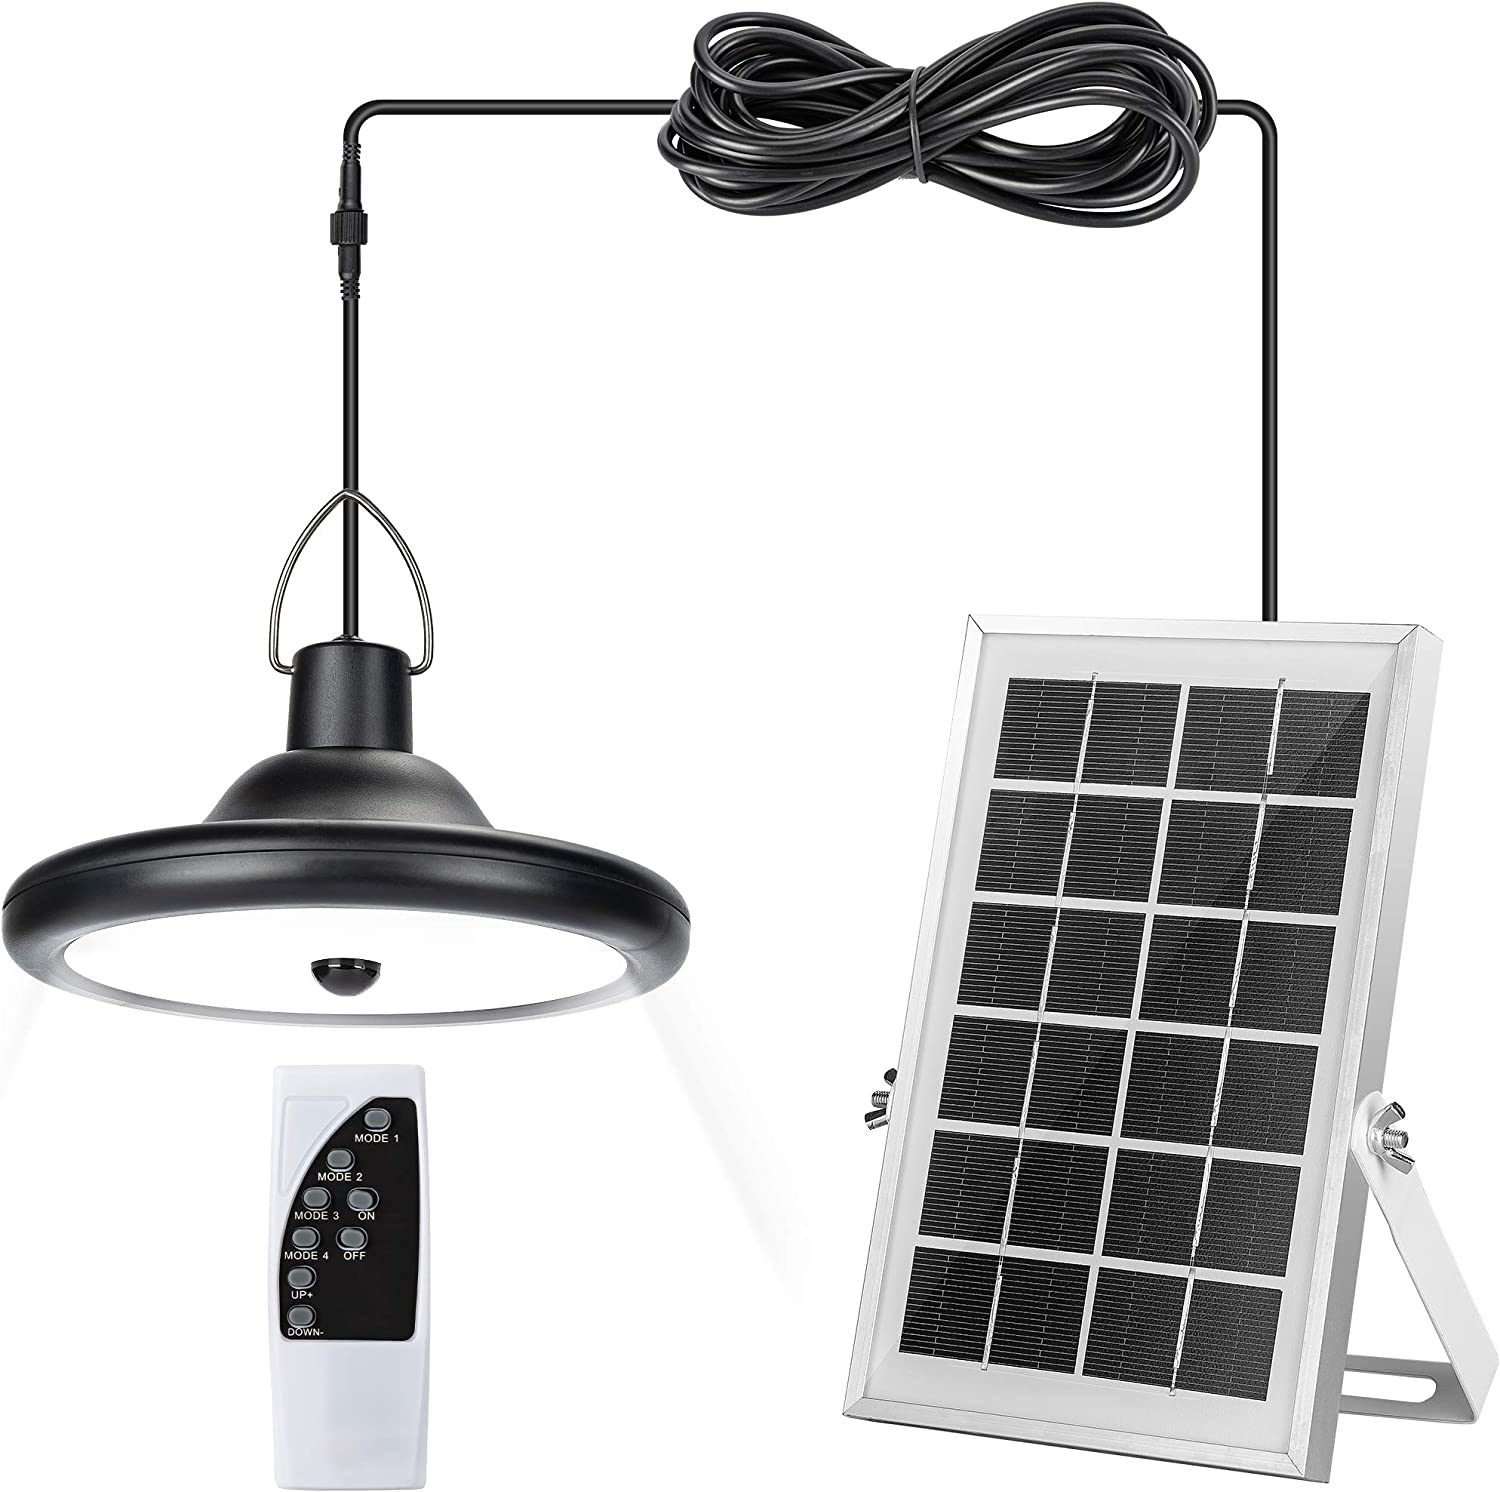 Upgraded Solar Pendant Light Motion Sensor JACKYLED Outdoor IP65 Waterproof LED Hanging Solar Shed Light with Remote Control 16.4Ft Cord Adjustable Solar Panel for Garden Home Chicken Coop, Cool White